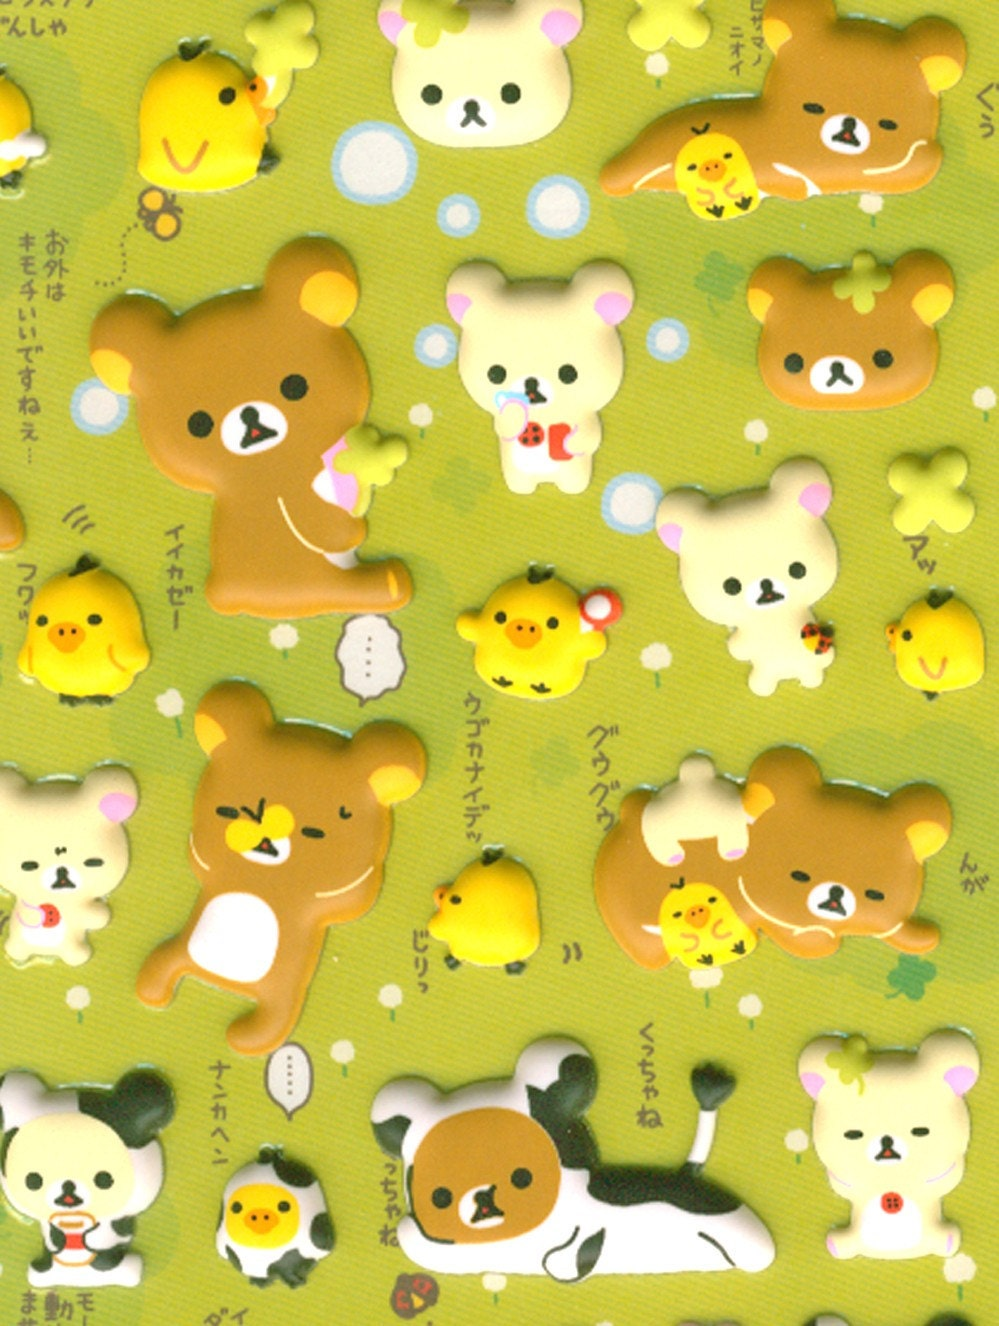 Adorable Japanese Stickers - San X Rilakkuma and Friends